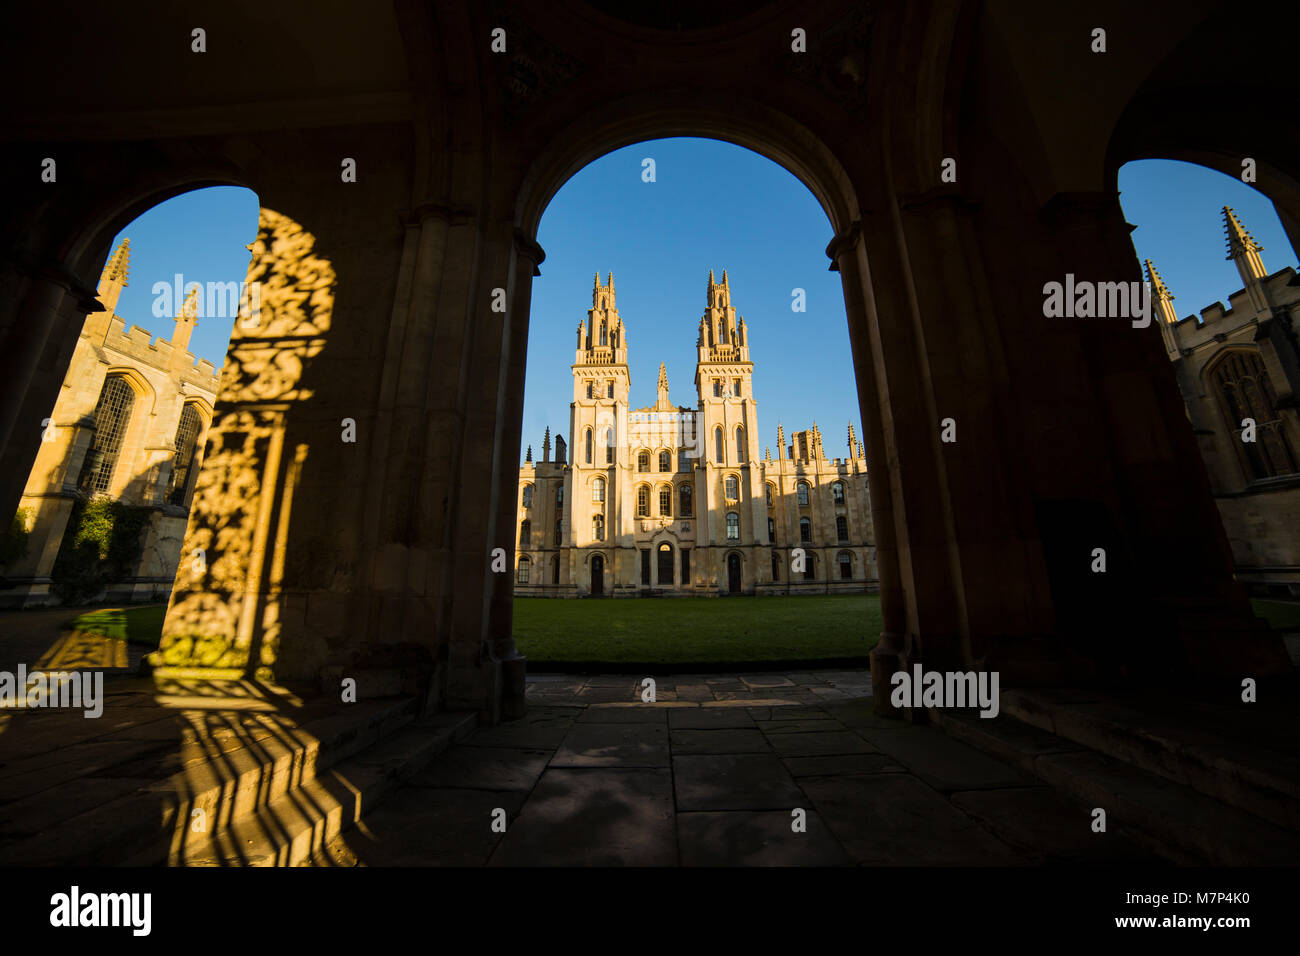 view of oxford buildings thru arches under blue sky - Stock Image